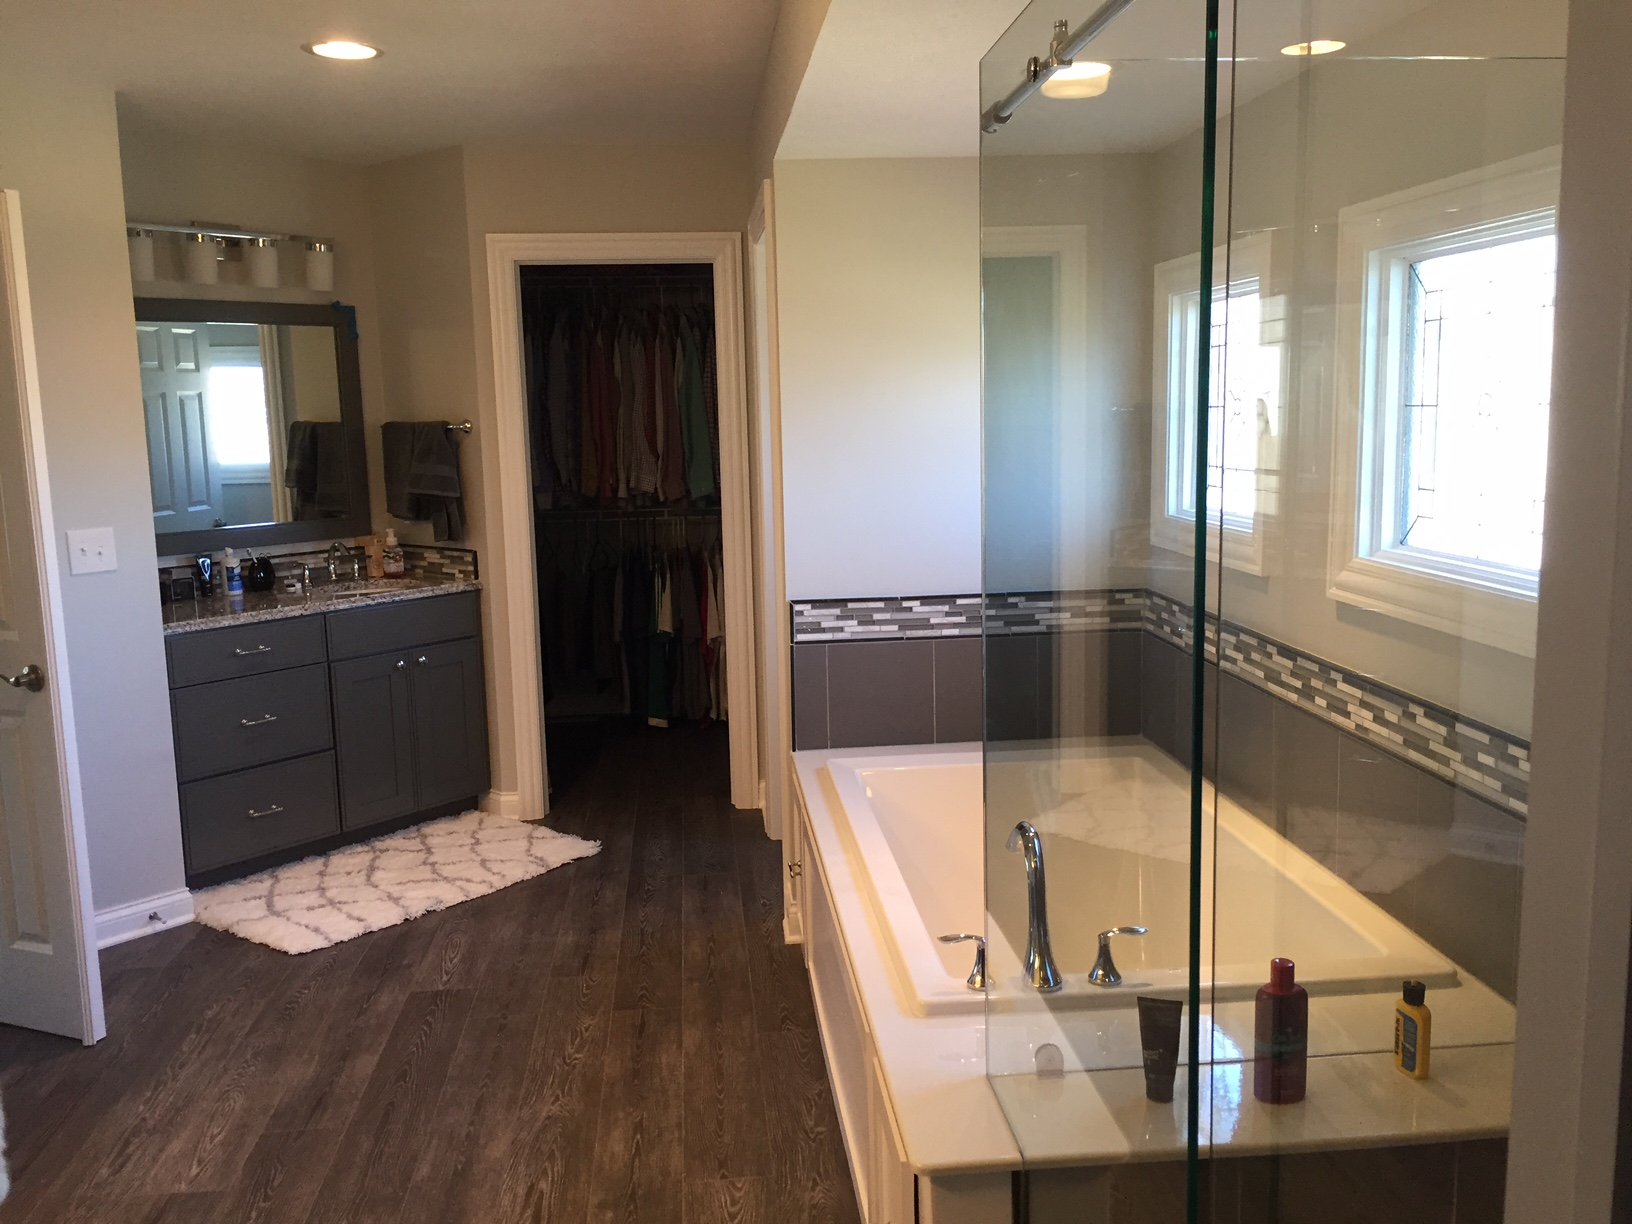 Luxury bath systems bathroom remodeler lewis center oh for Luxury bathroom companies